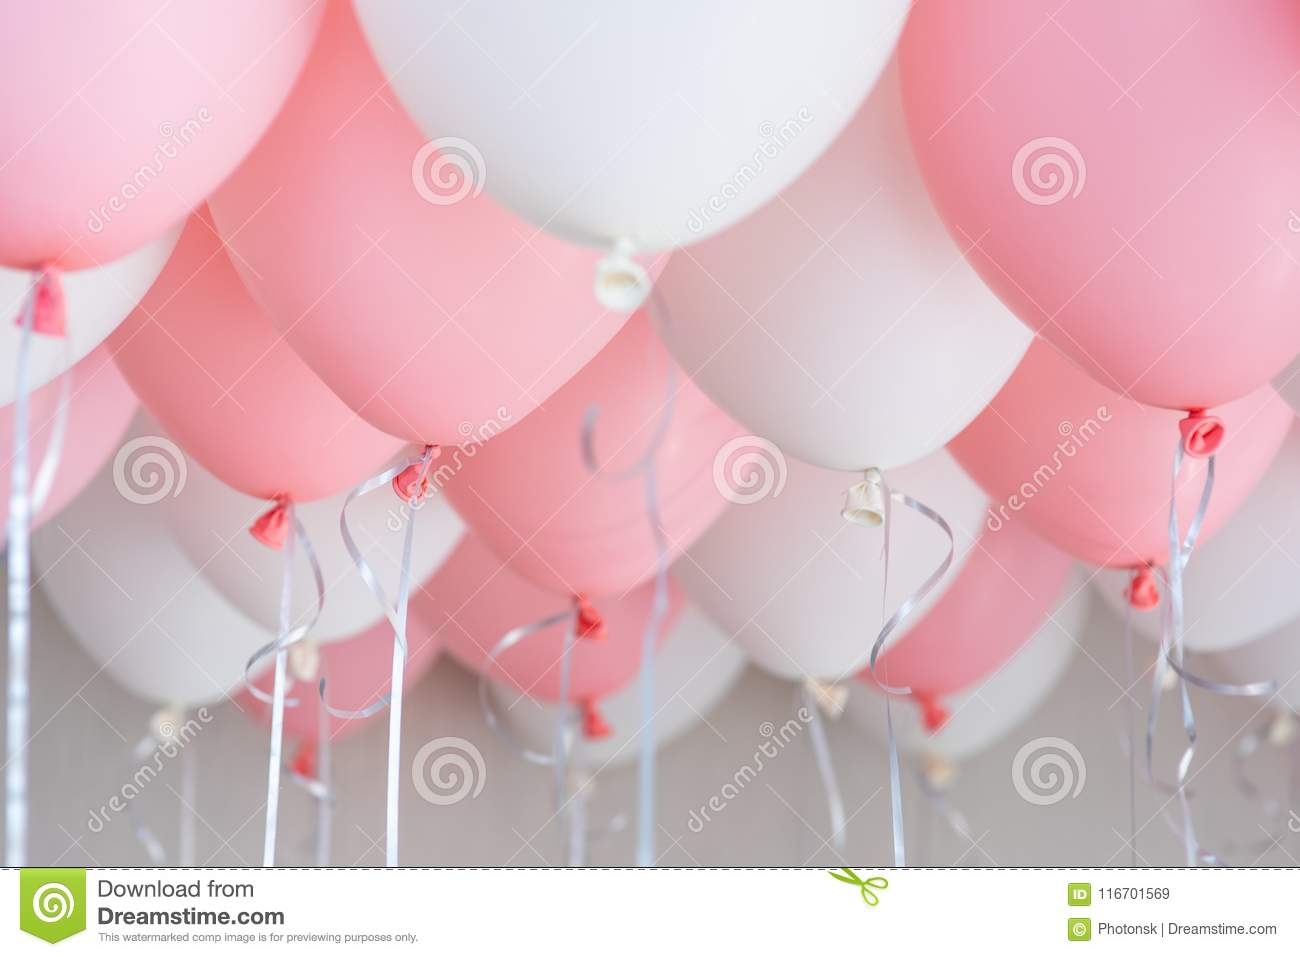 Colourful balloons, pink, white, streamers. Helium Ballon floating in birthday party. Concept balloon of love and